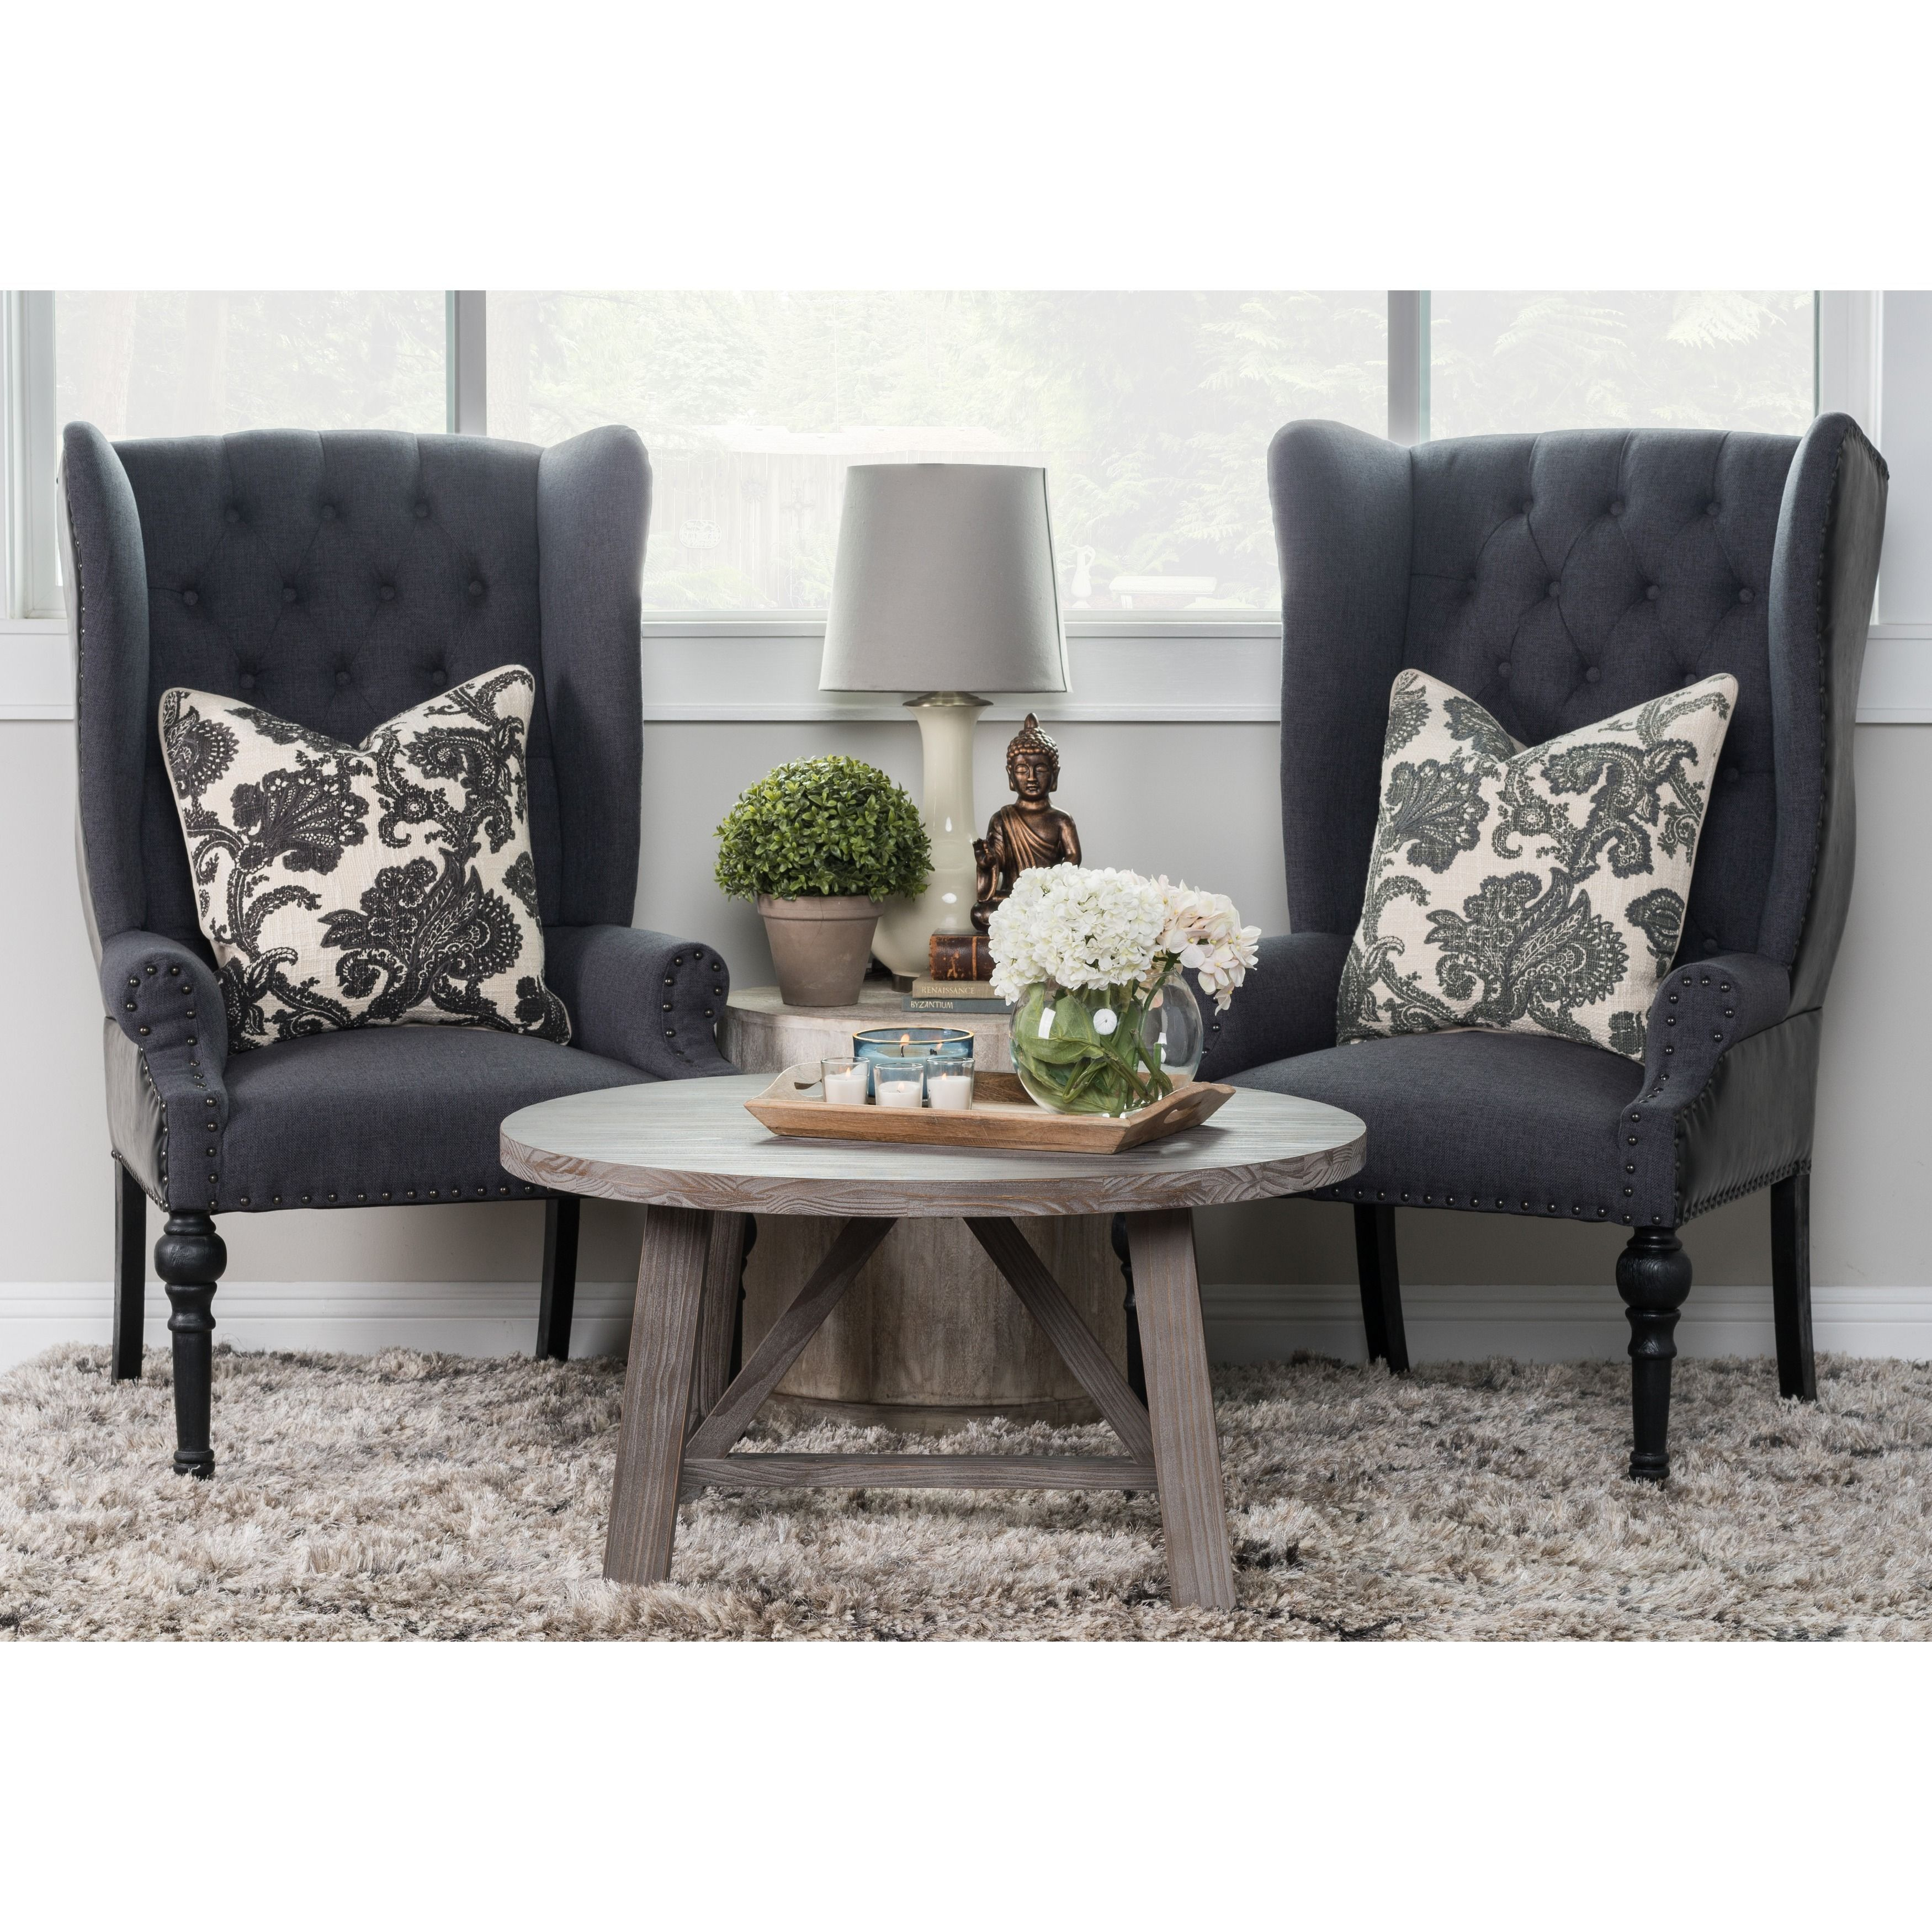 traditional wingback chair baby doll high target this modernizes the classical design allowing kosas home eleanor brings a contemporary update to